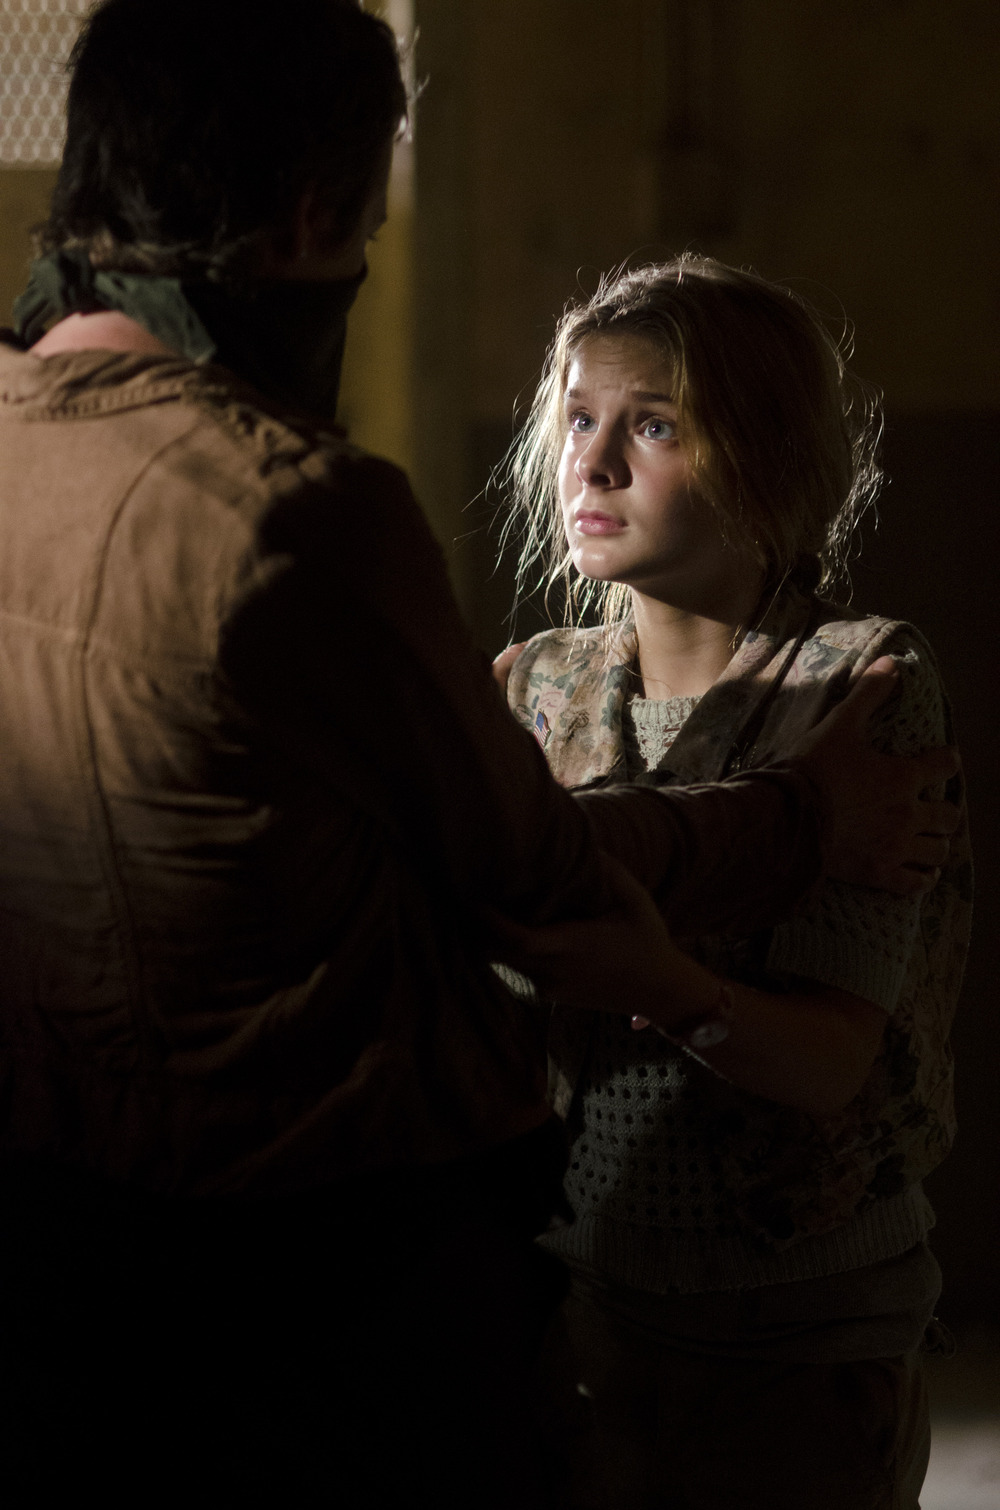 The Walking Dead Season 4 Spoilers: Is Lizzie the New Version of Comic Book Ben?